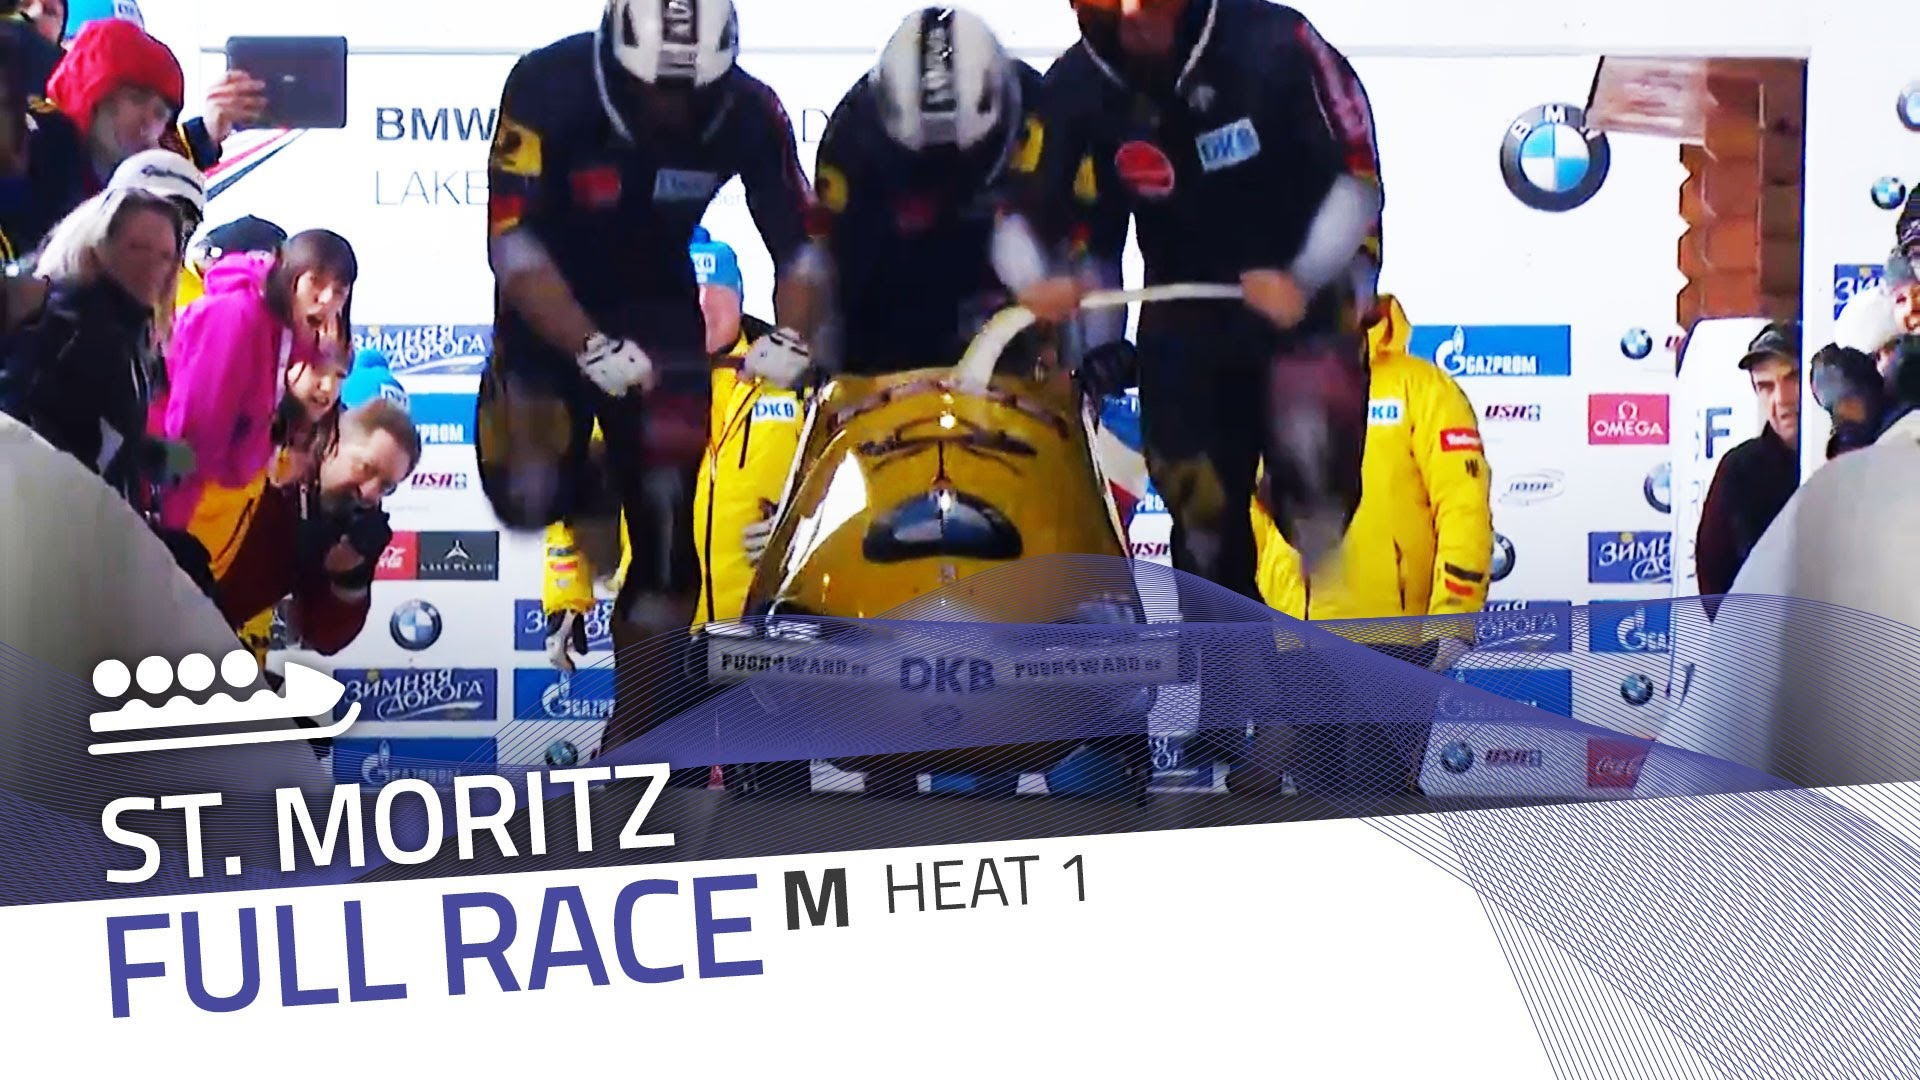 St. moritz | bmw ibsf world cup 2015/2016 - 4-man bobsleigh heat 1 | ibsf official